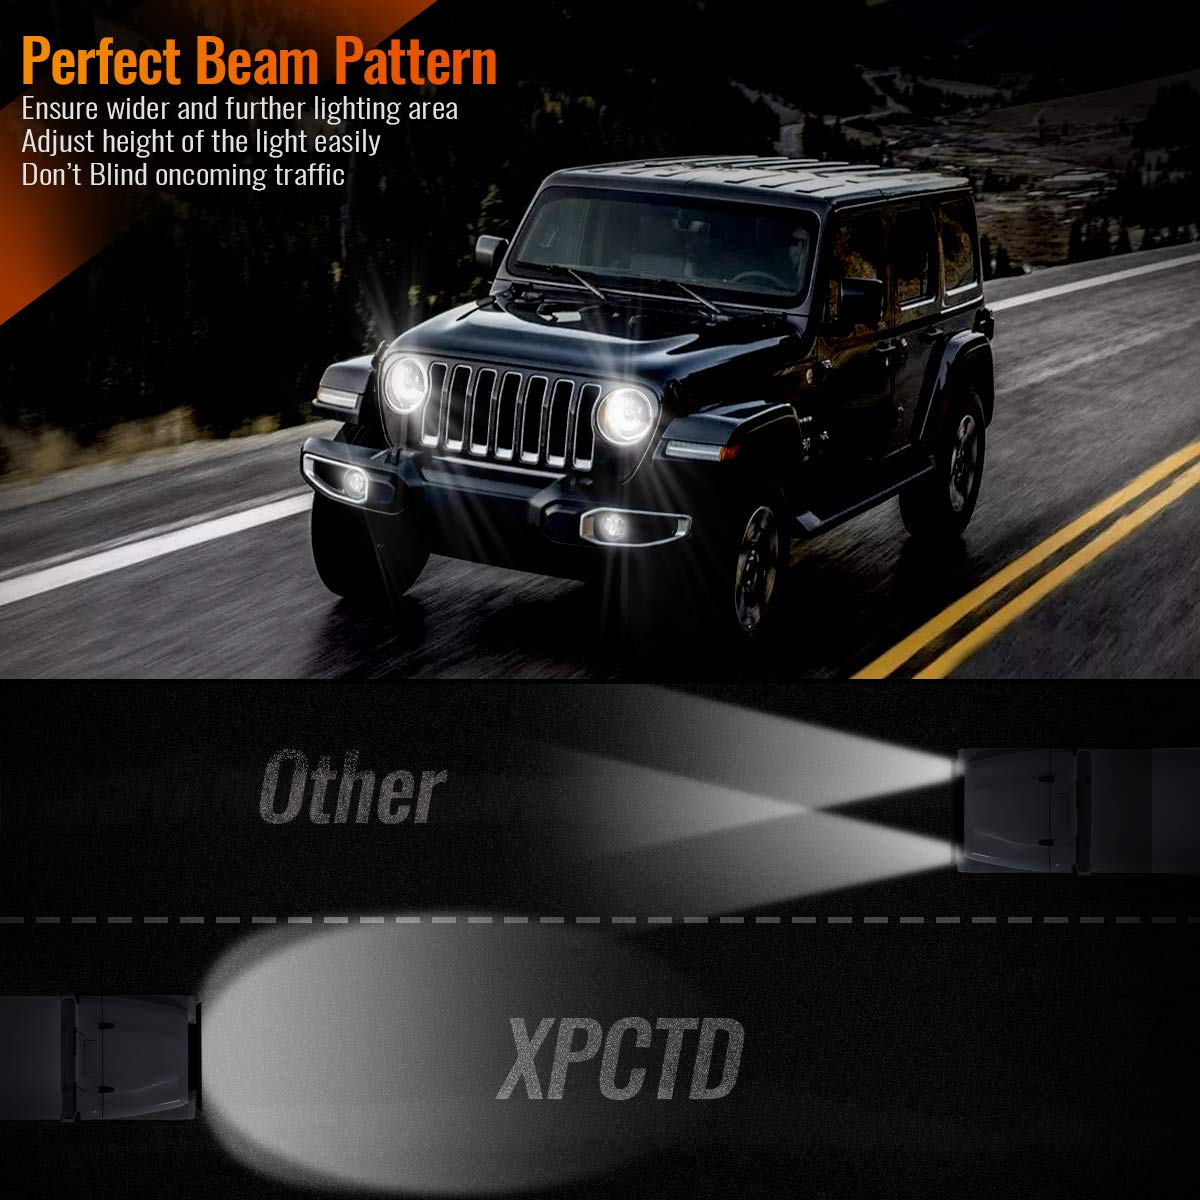 DOT Approved 7 Inch Round LED Headlights with High Low Beam for Jeep Wrangler JK JKU TJ LJ CJ 4 Door 2 Door Hummer H1 H2 H6024 Headlamp Replacement 6 Bulbs 2PCS